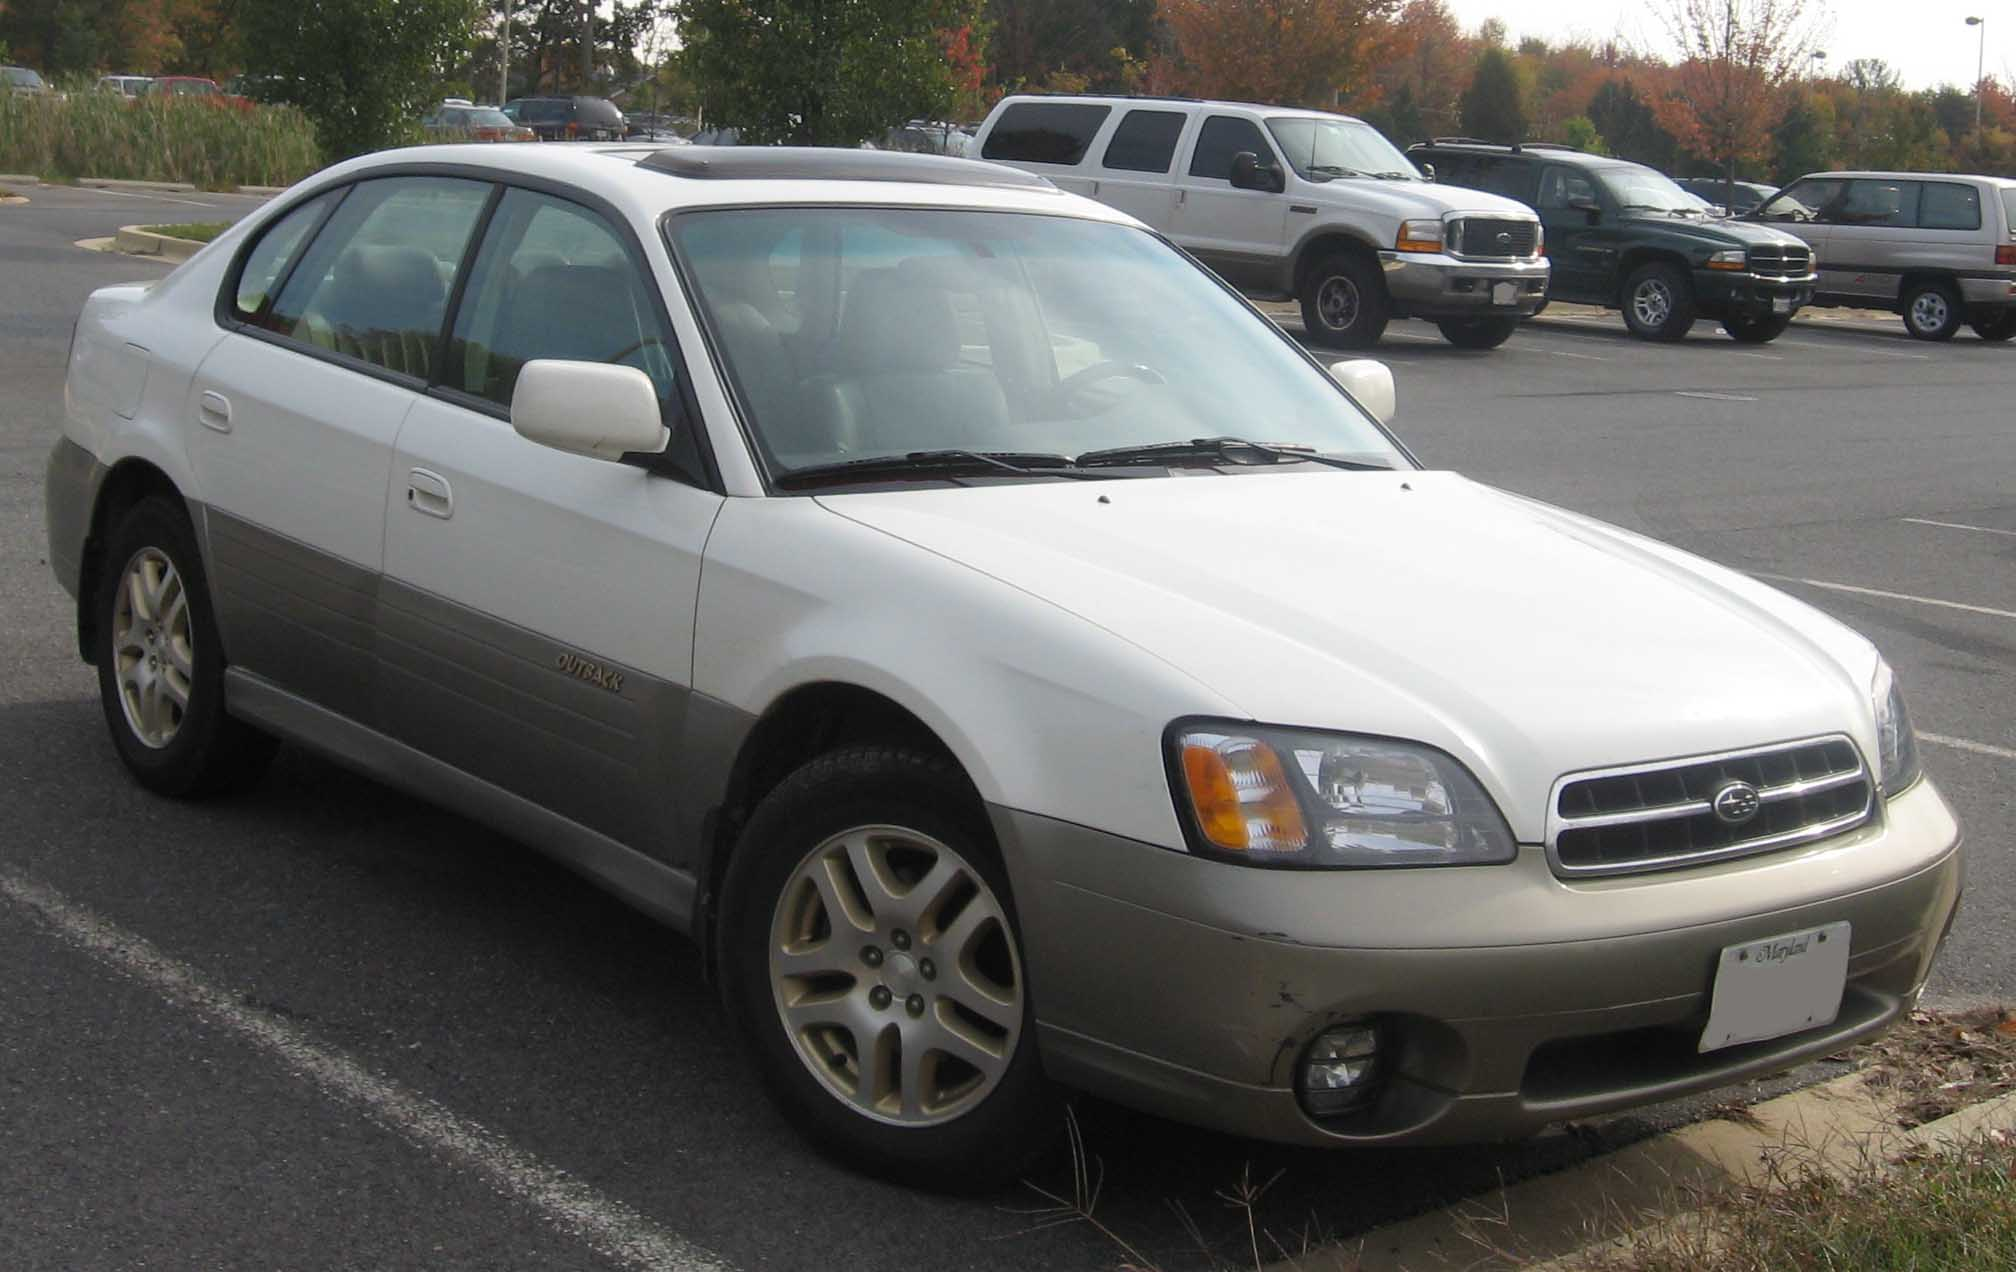 File:00-04 Subaru Outback Sedan jpg - Wikimedia Commons